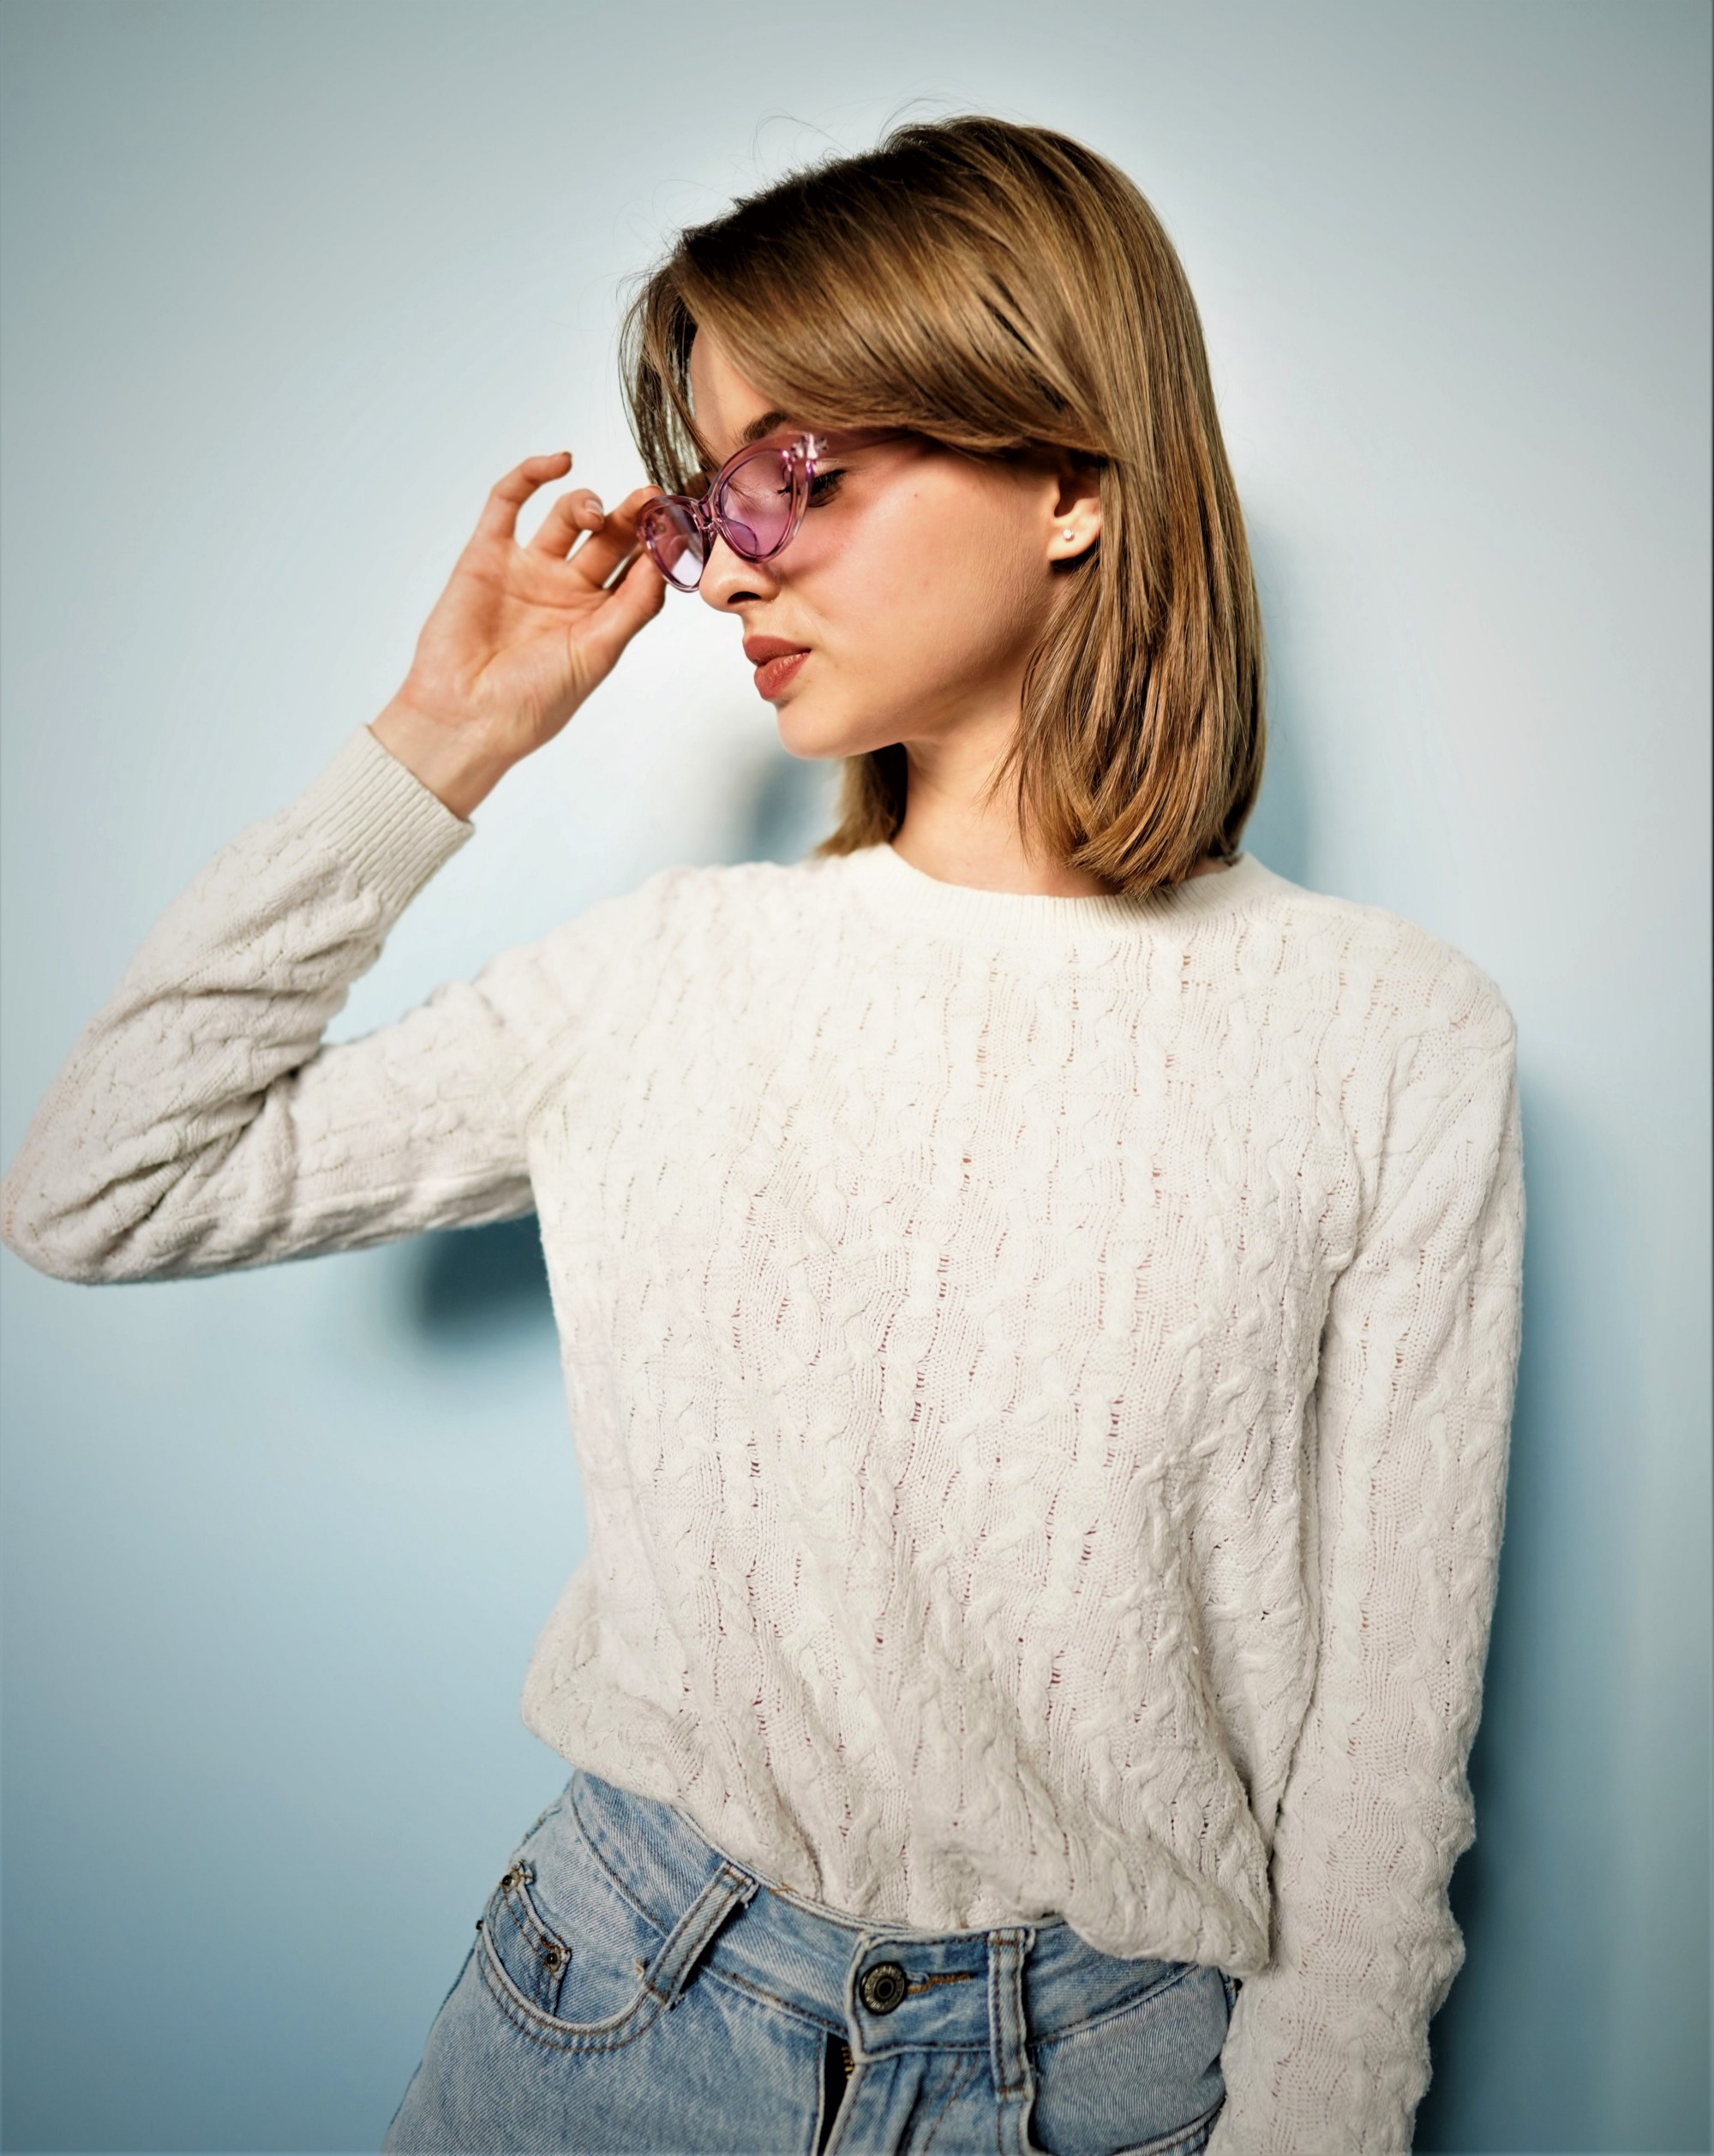 woman wearing long sleeve white sweater and glasses with head turned to profile and fingers touching glasses